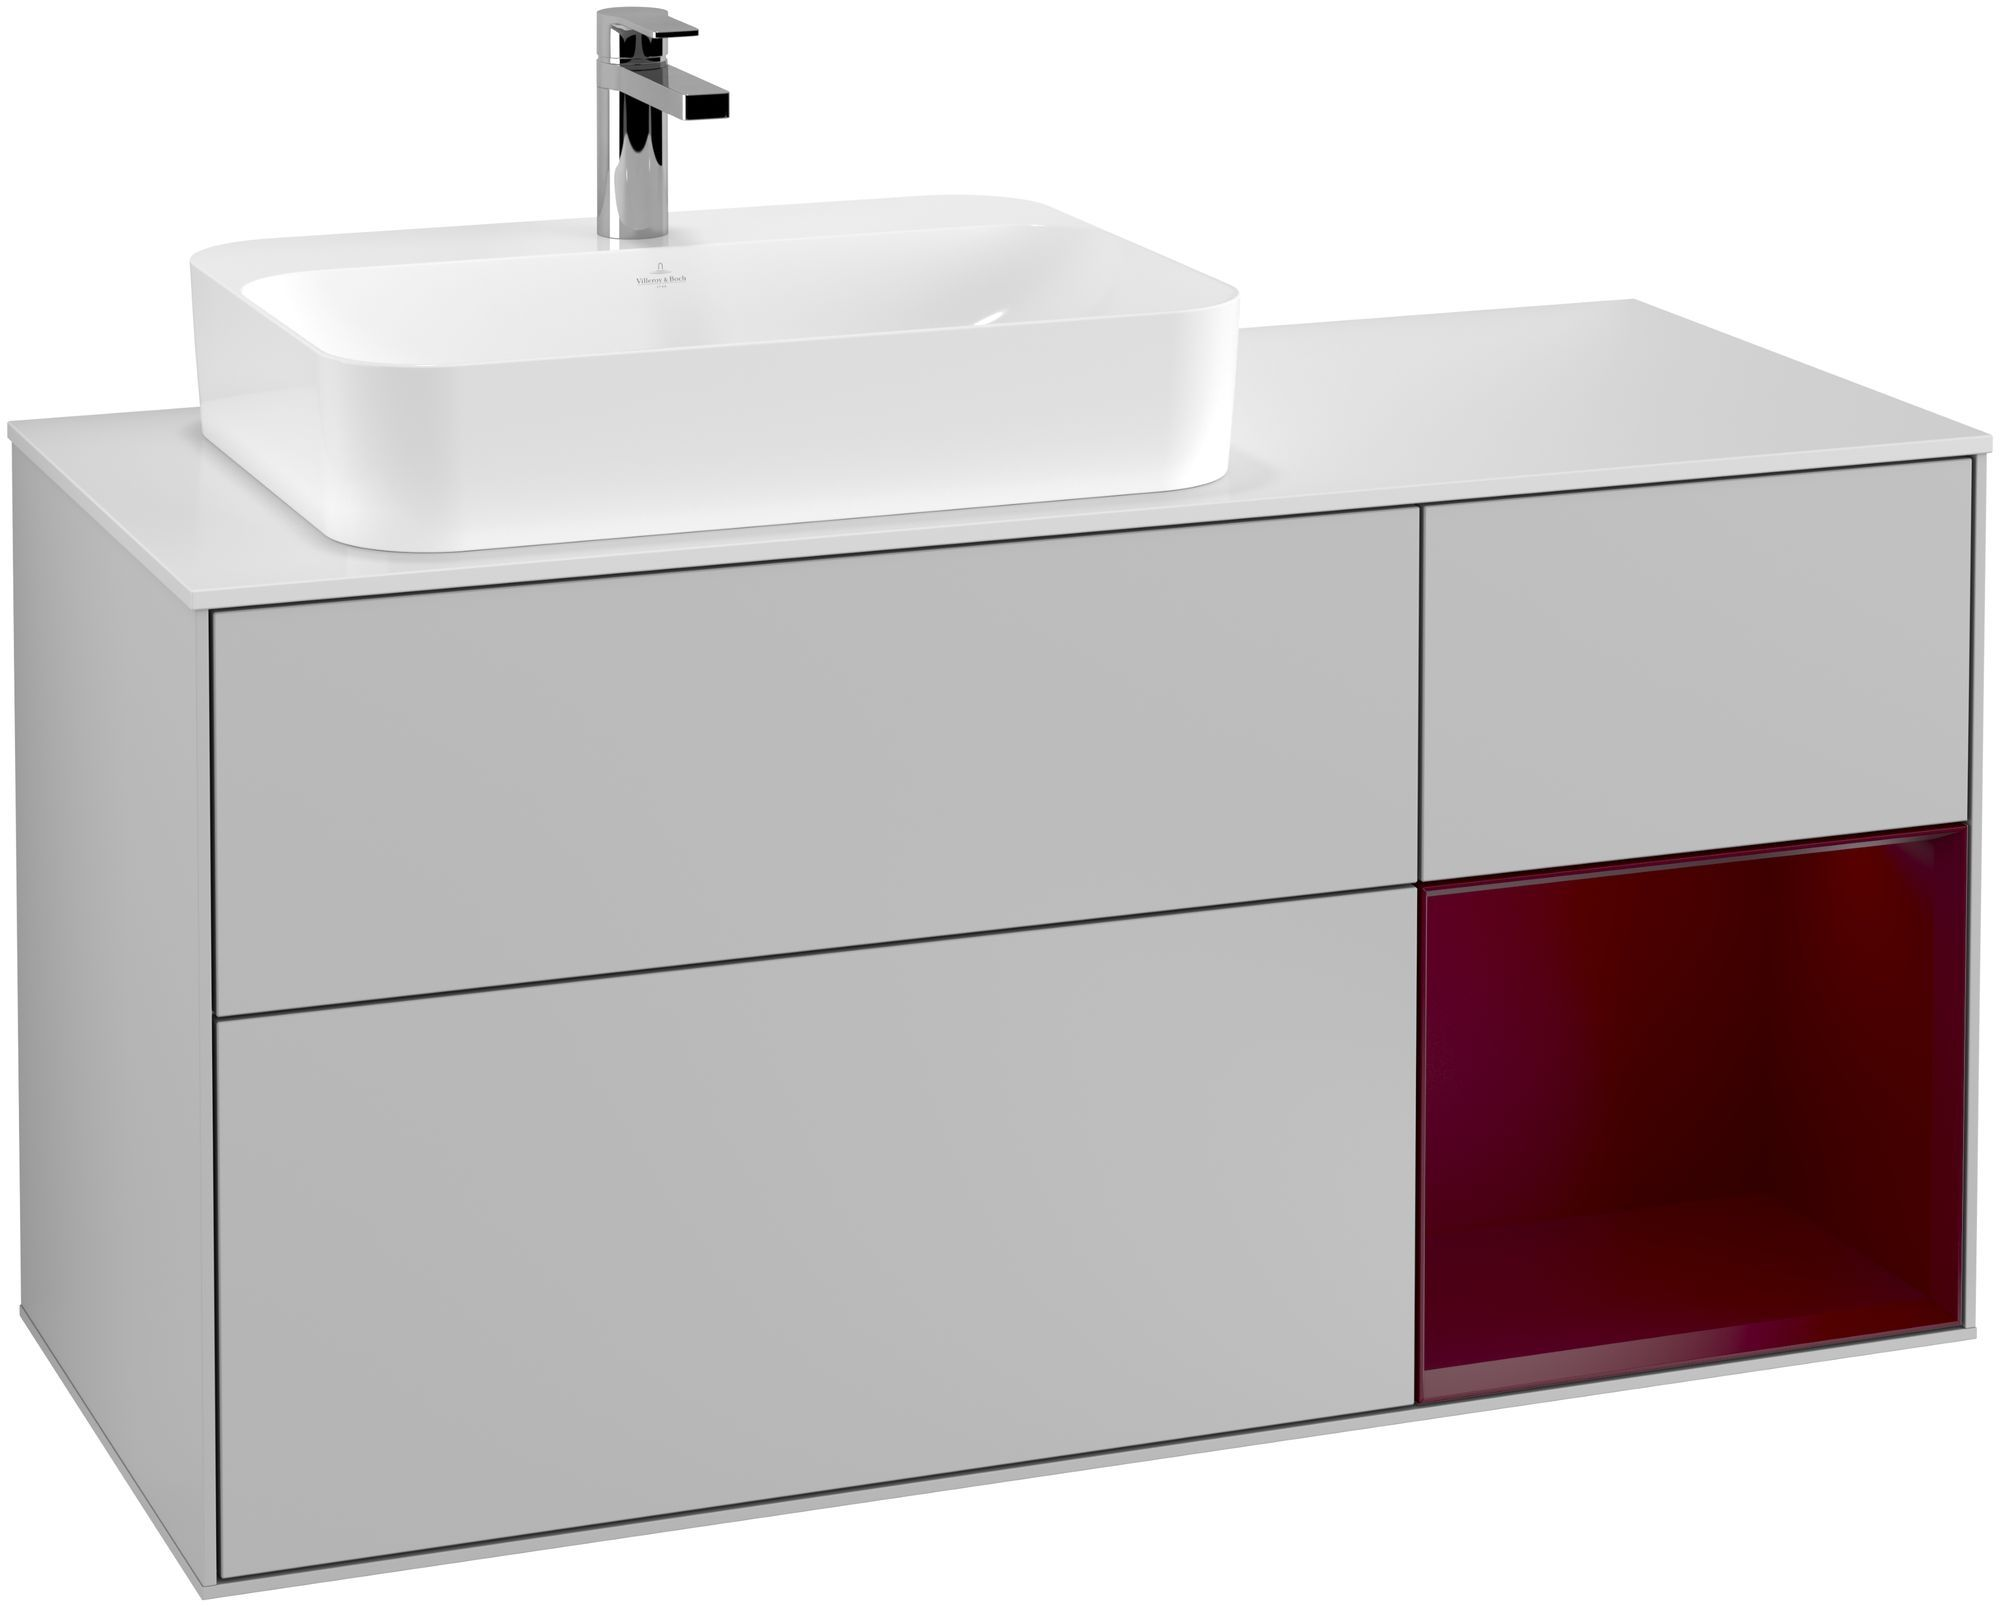 Villeroy & Boch Finion F40 Waschtischunterschrank mit Regalelement 3 Auszüge Waschtisch links LED-Beleuchtung B:120xH:60,3xT:50,1cm Front, Korpus: Light Grey Matt, Regal: Peony, Glasplatte: White Matt F401HBGJ